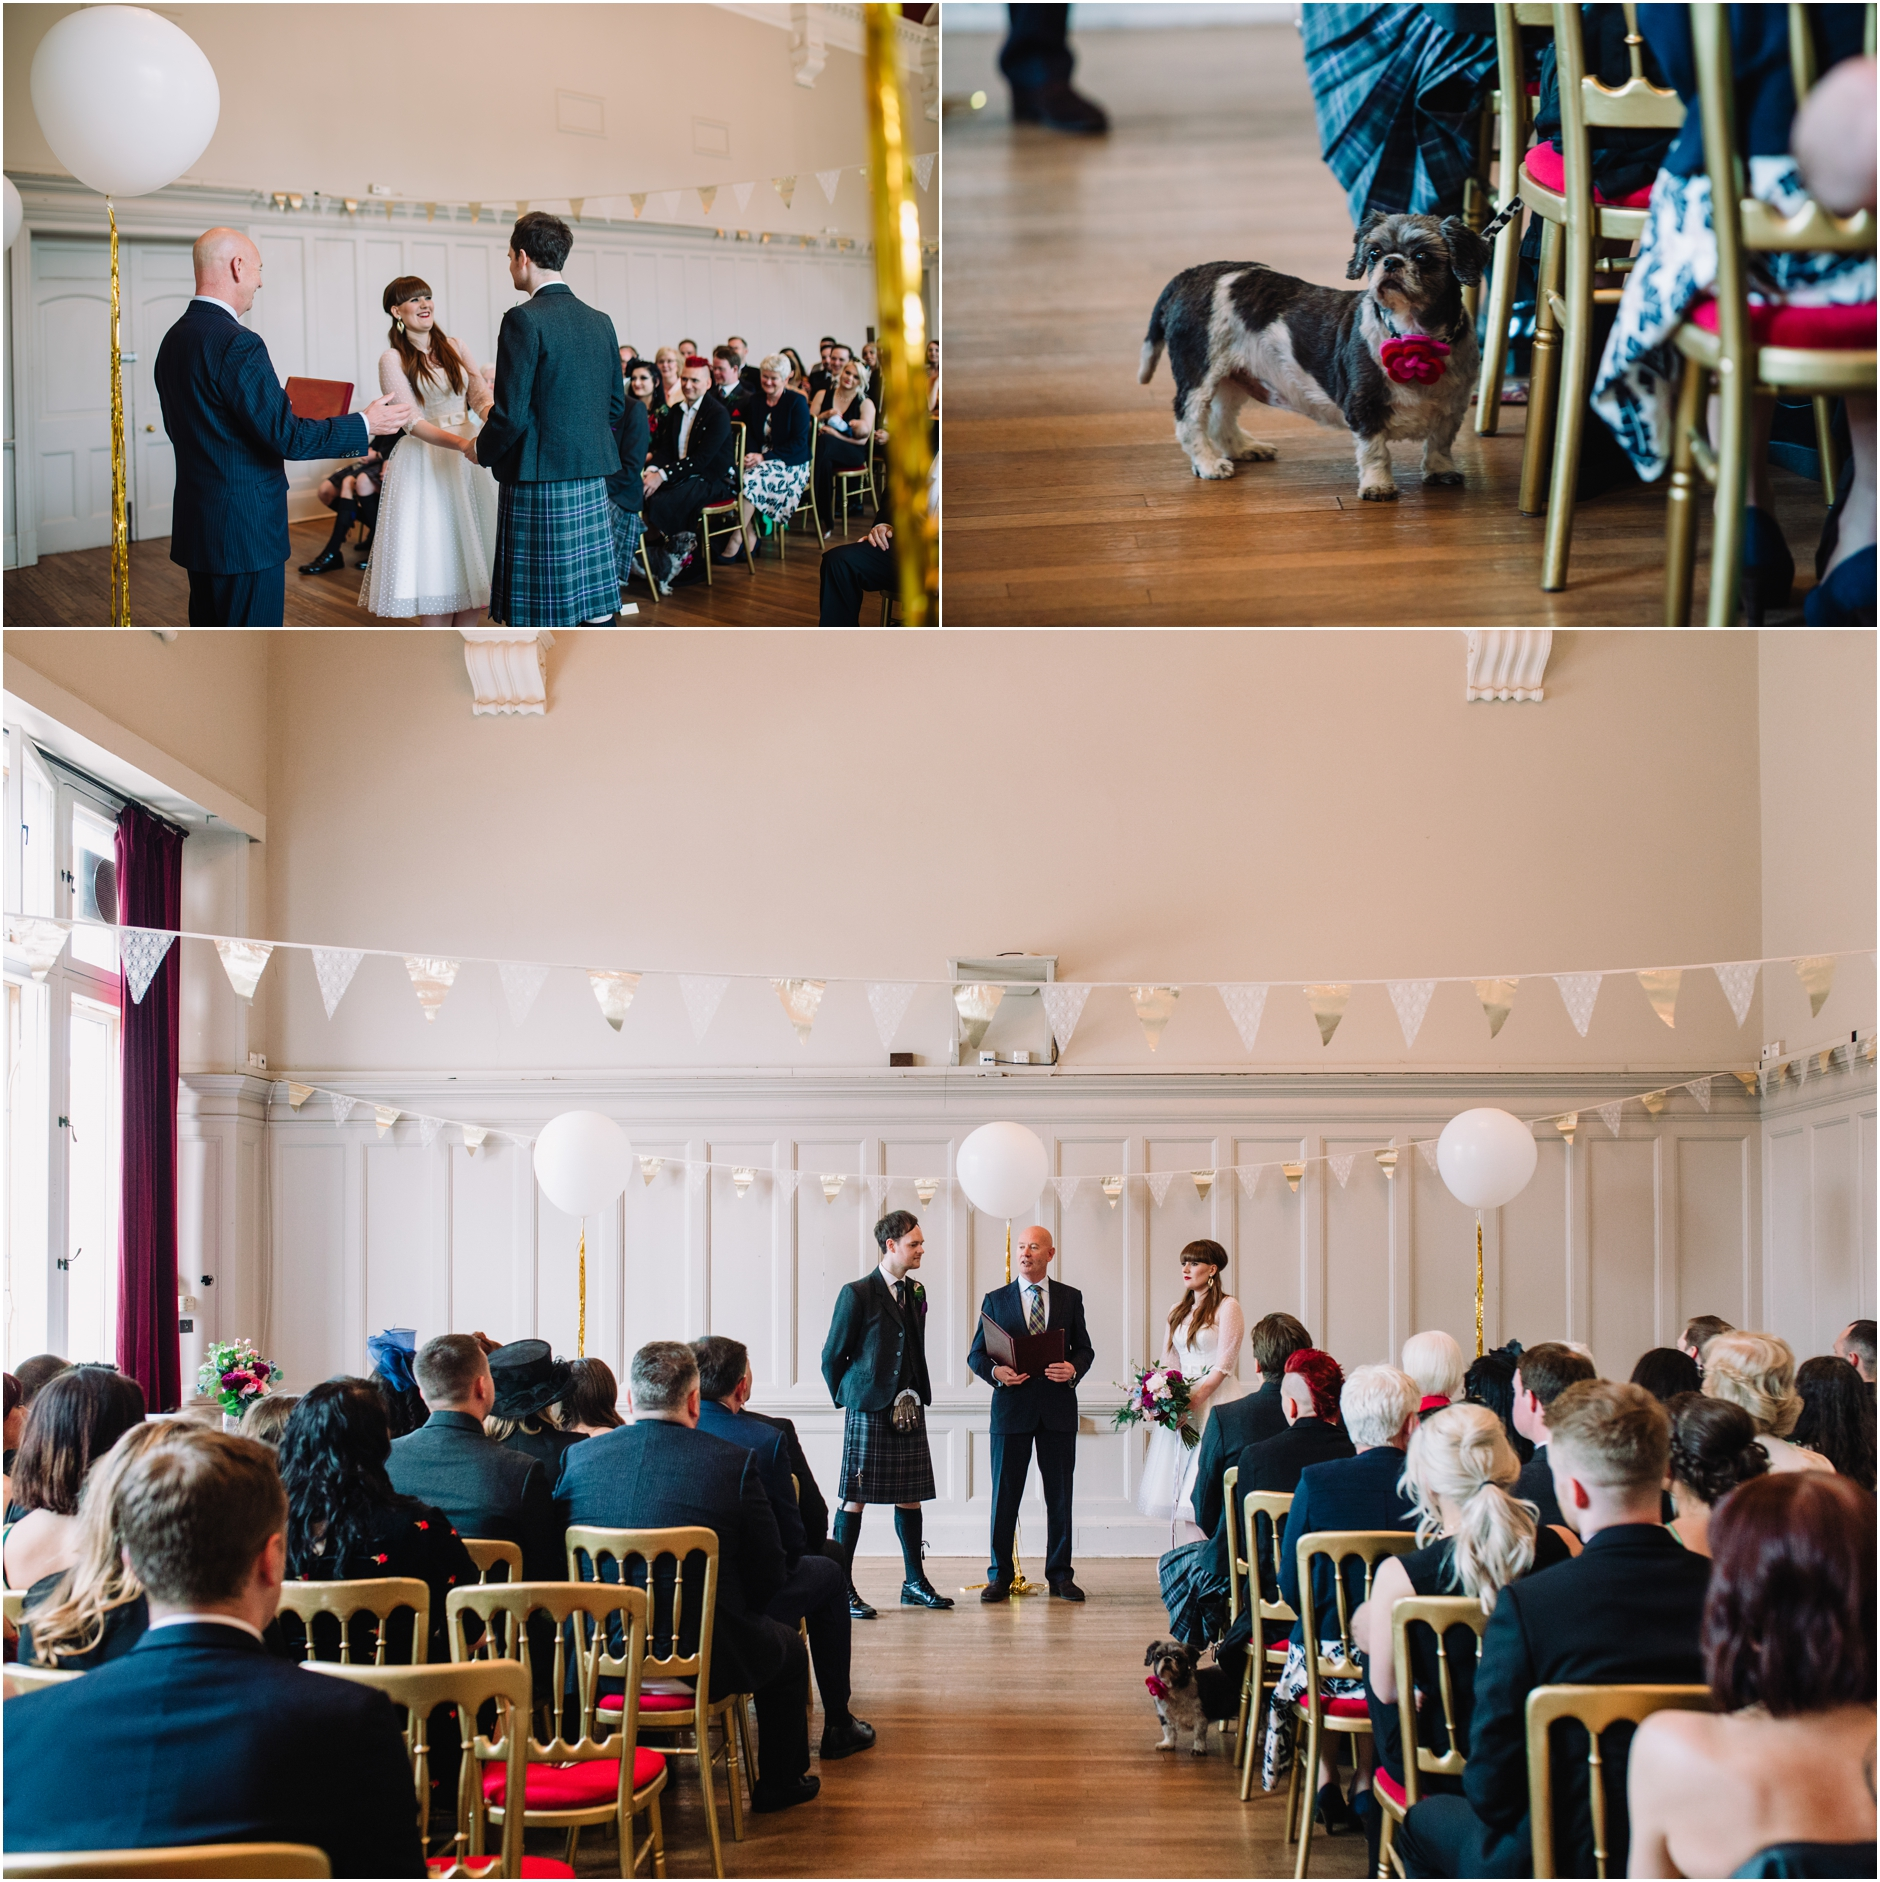 rock n roll alternative wedding photographer summerhall edinburgh scotland